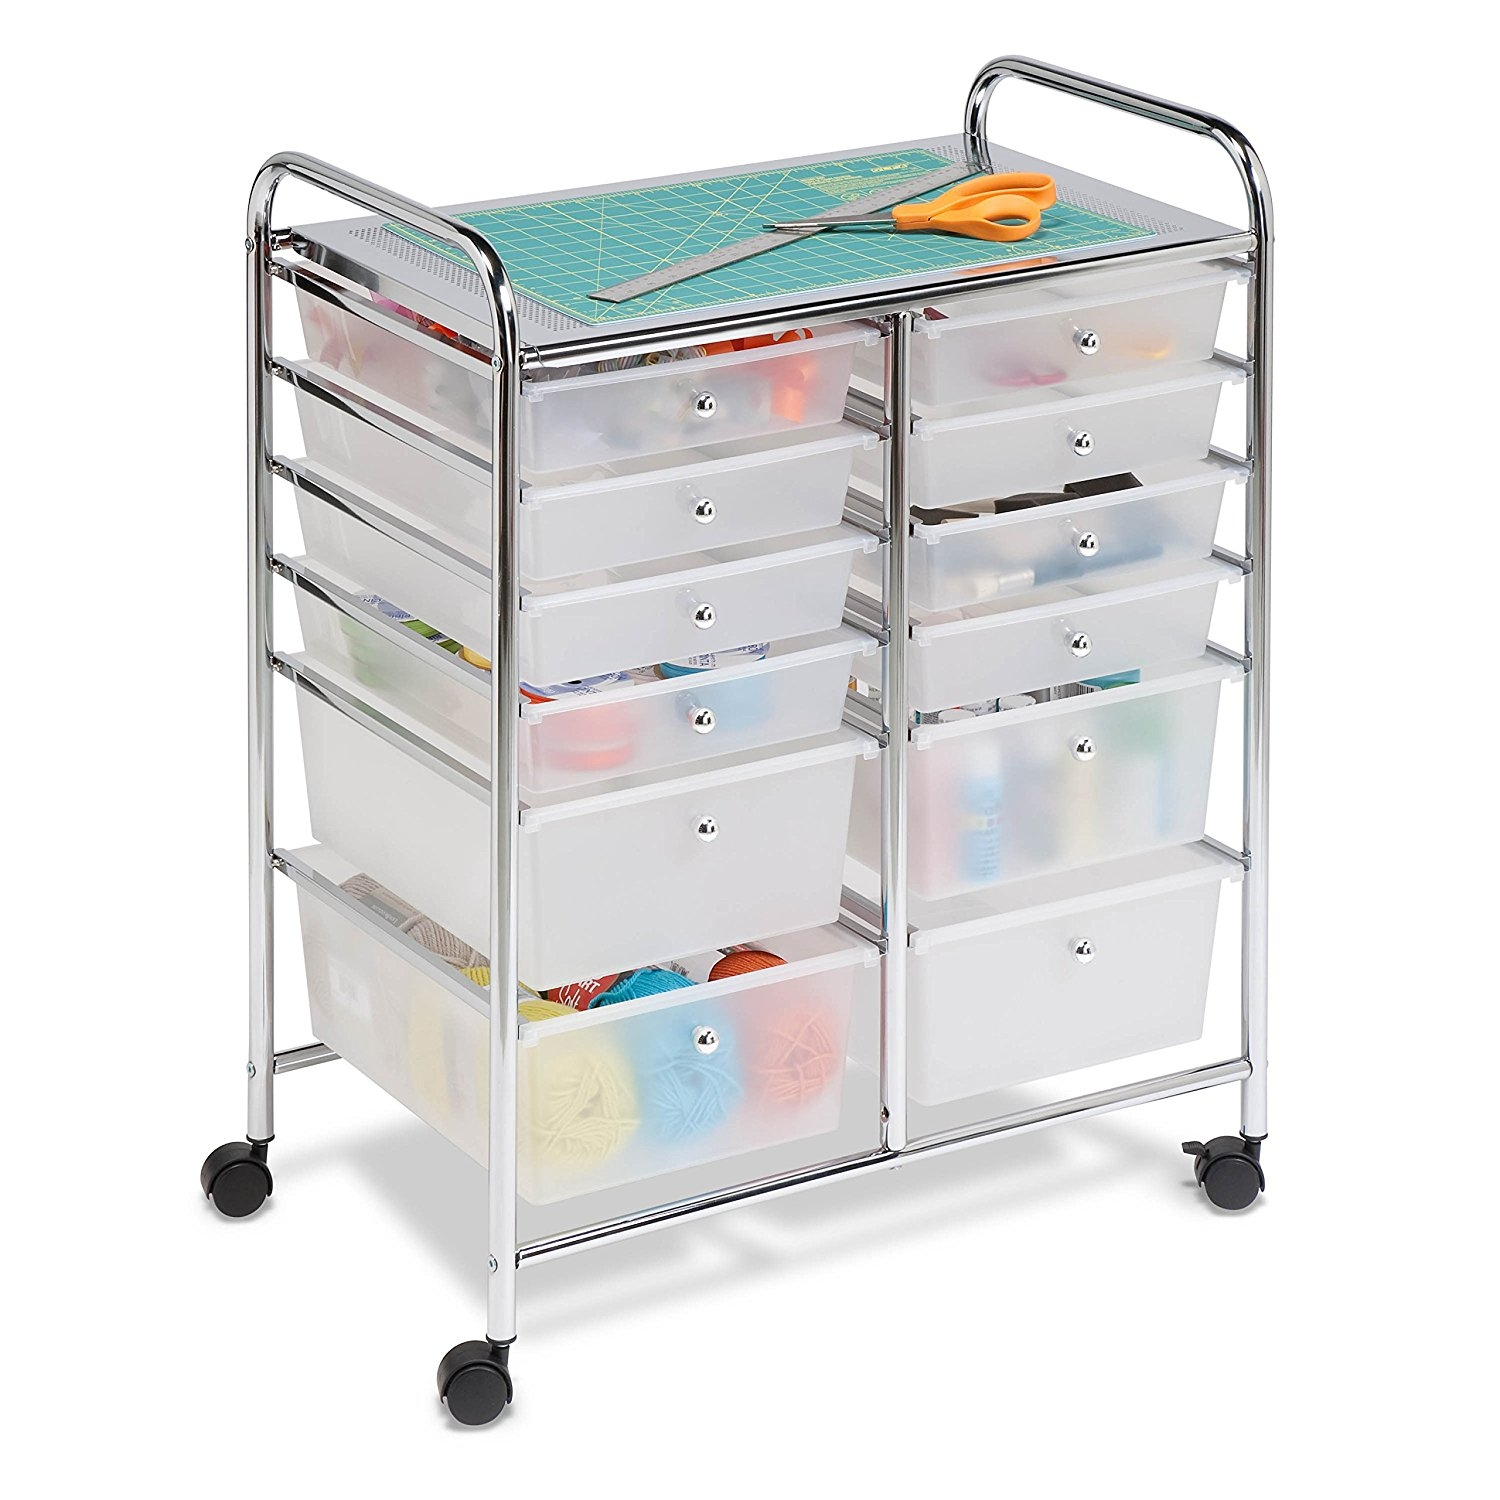 Honey-Can-Do Rolling Storage Cart and Organizer with 12 P...